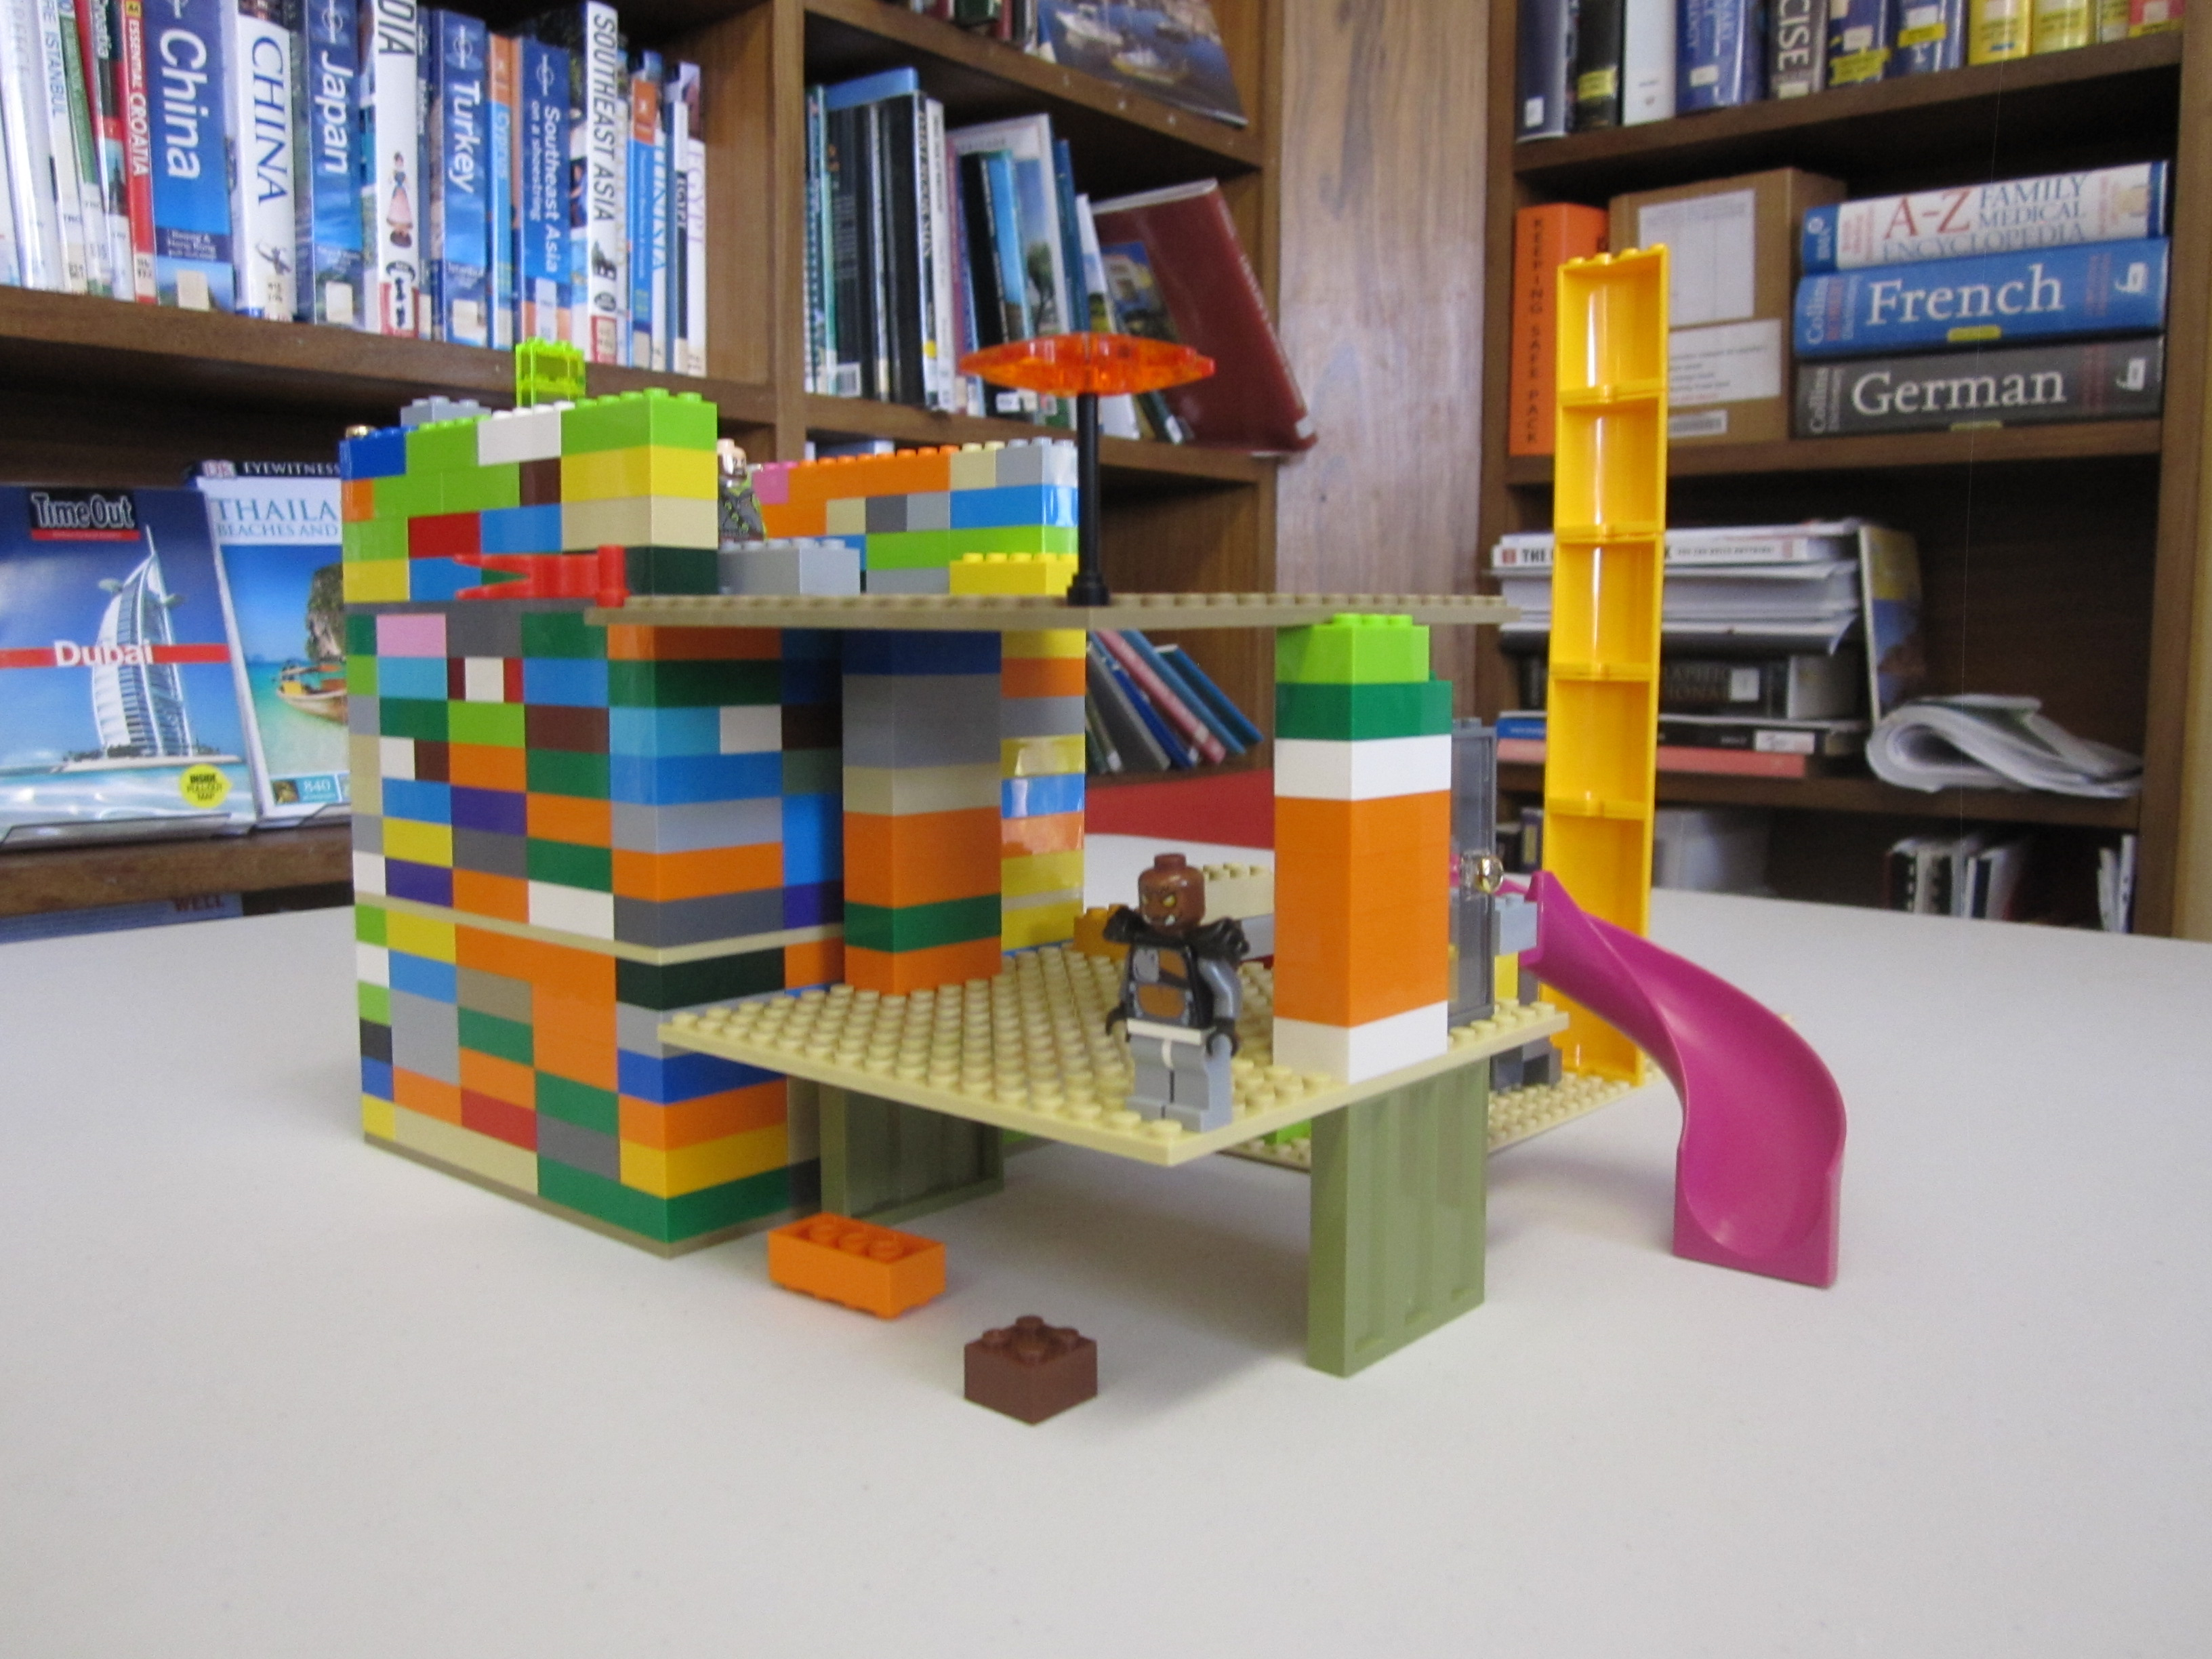 LEGO Table available to use throughout the library opening hours in the afternoon. A great way to create and build some wonderful Lego creations.